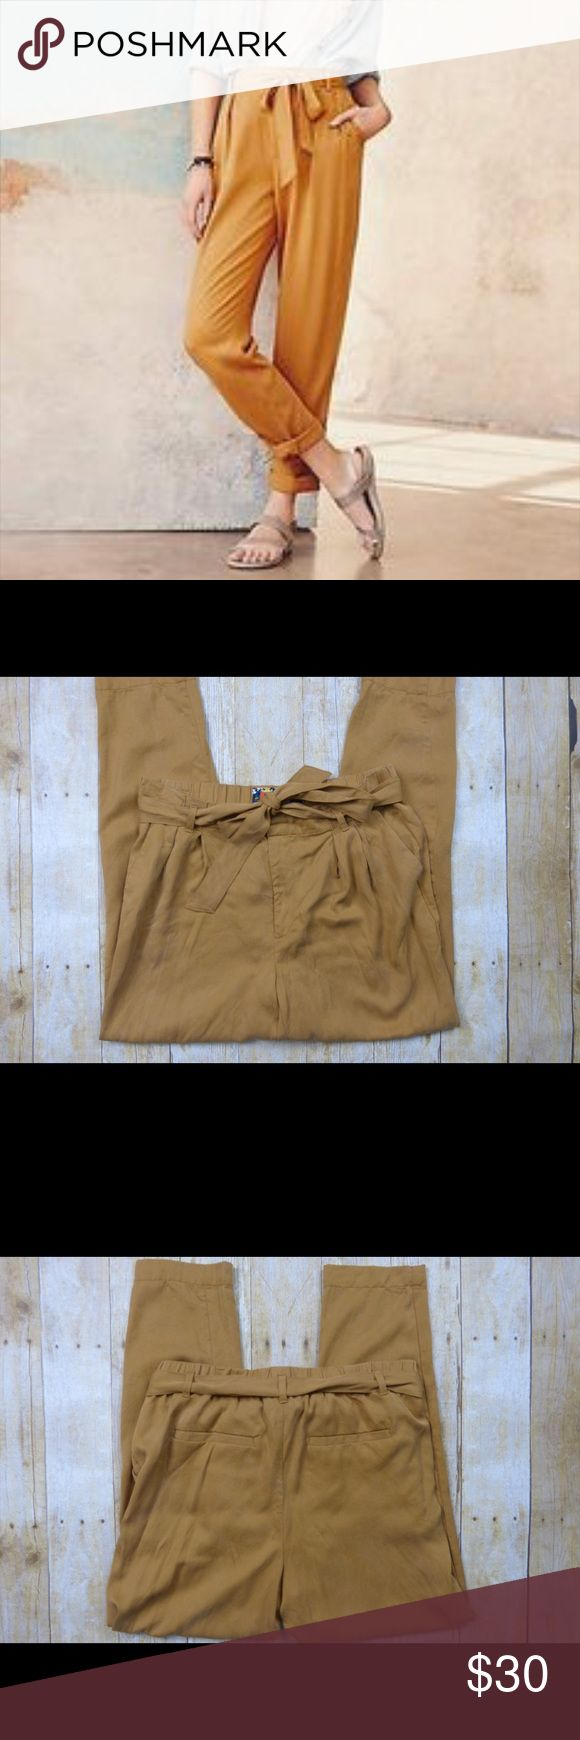 """Anthropologie Cartonnier Mustard Yellow Pants Like new condition 100% tensel Elastic waist Removable belt 10.5"""" rise 27"""" inseam Anthropologie Pants"""